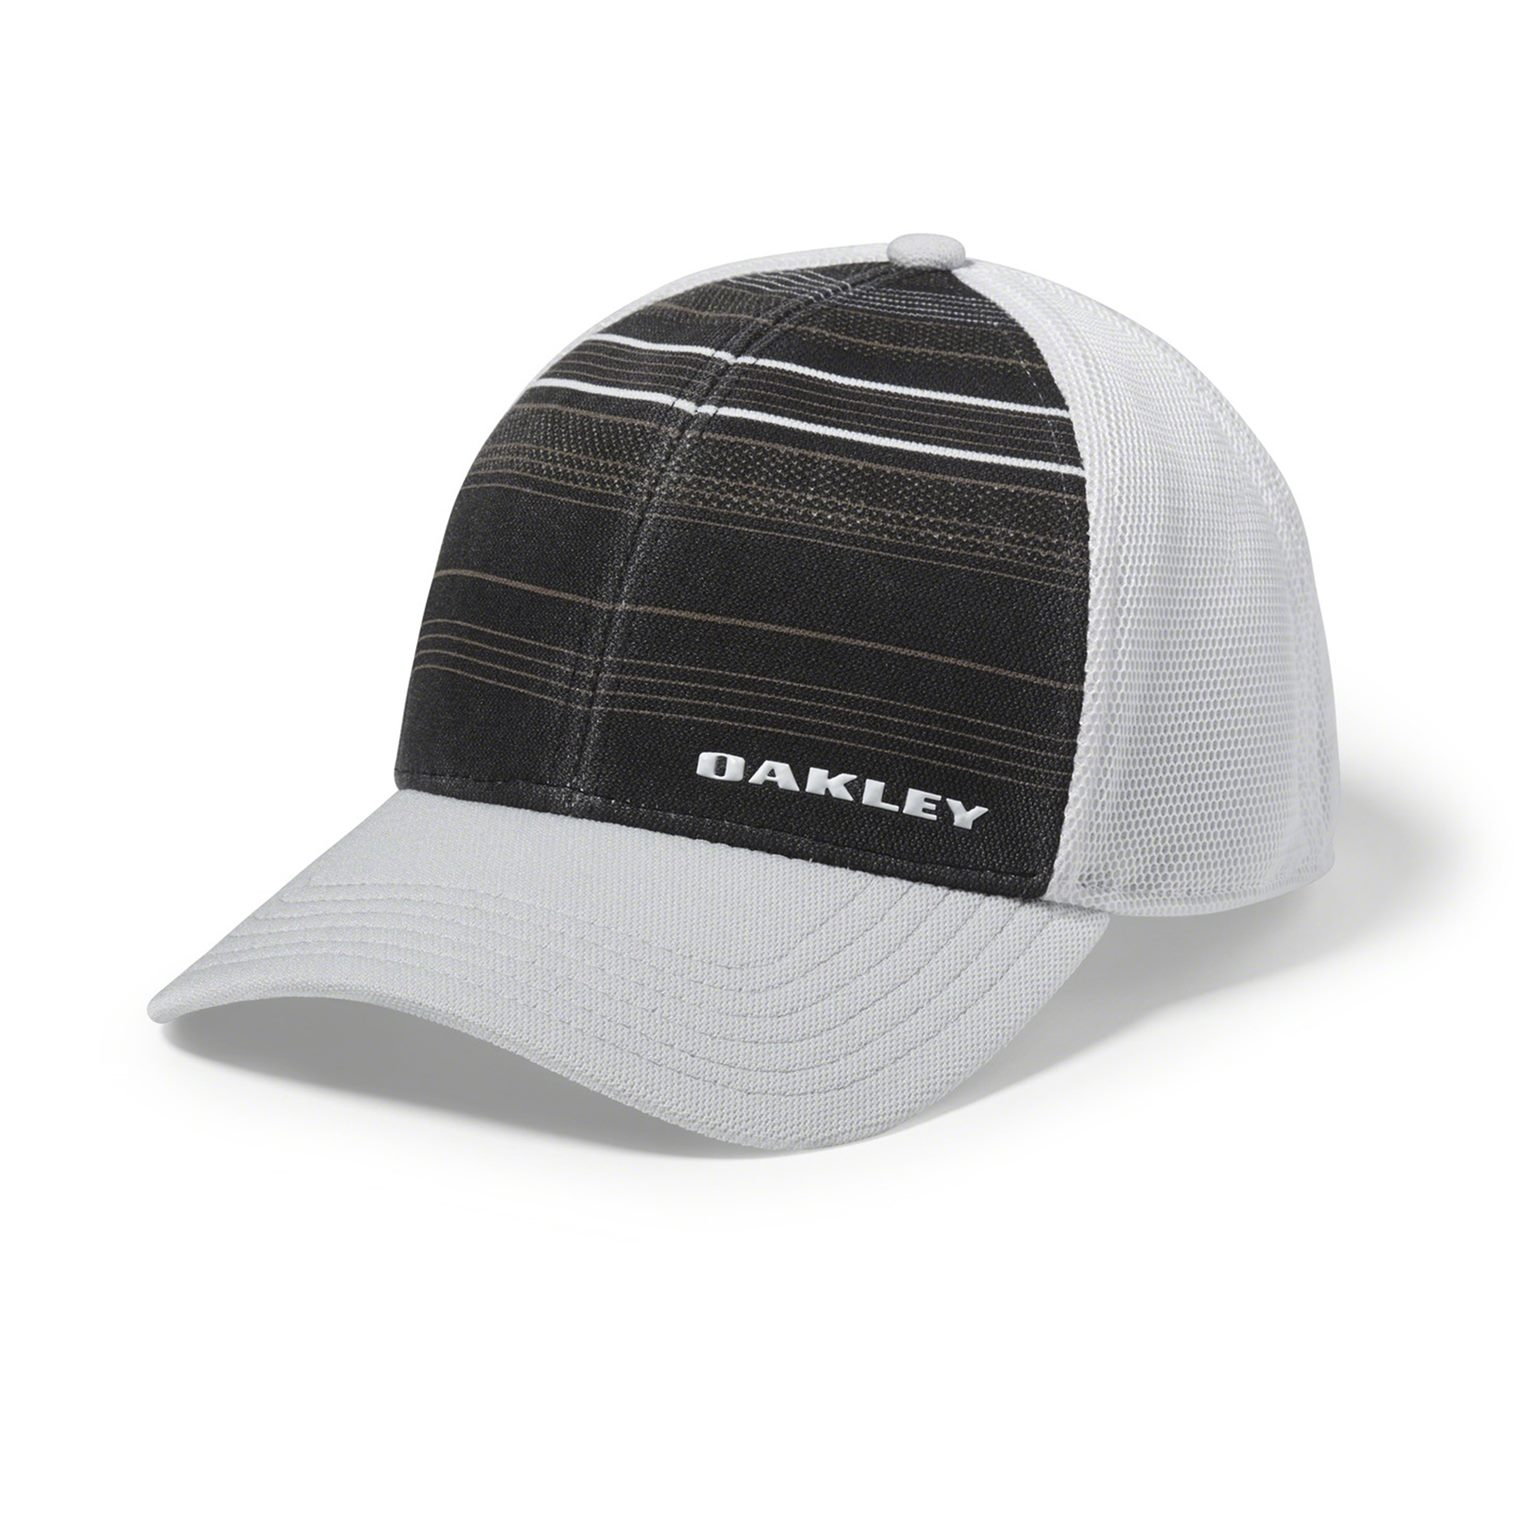 Oakley Silicon Bark Trucker Print 2.0 Hat Cap Blackout Large Extra ... ebe6c53dc4de